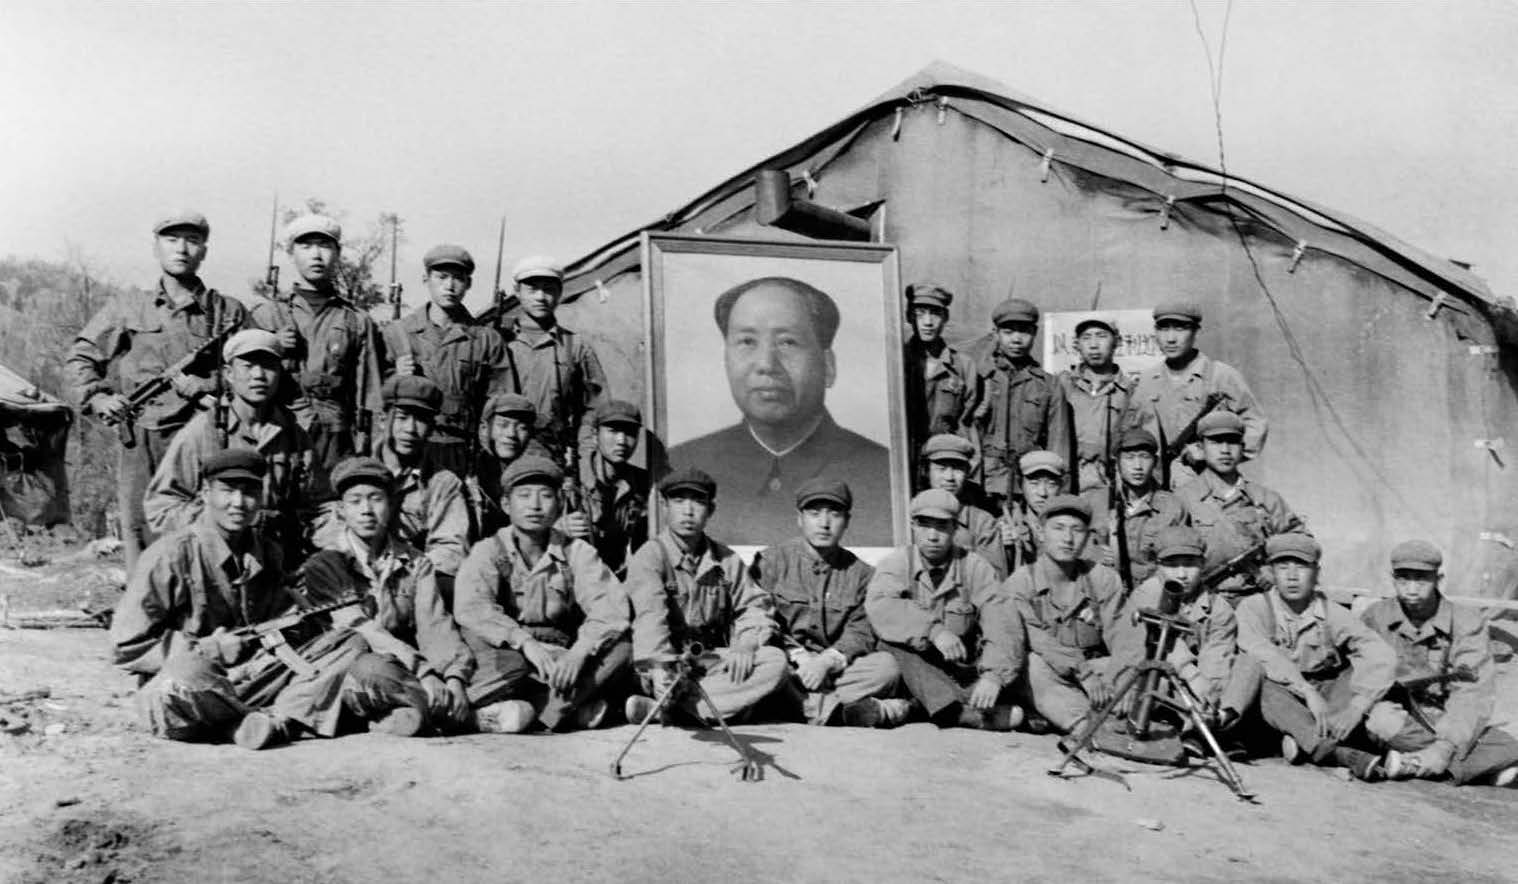 wang-qiuhang-cultural-revolution-selfies-1966-1976-photography-of-china-11.jpg